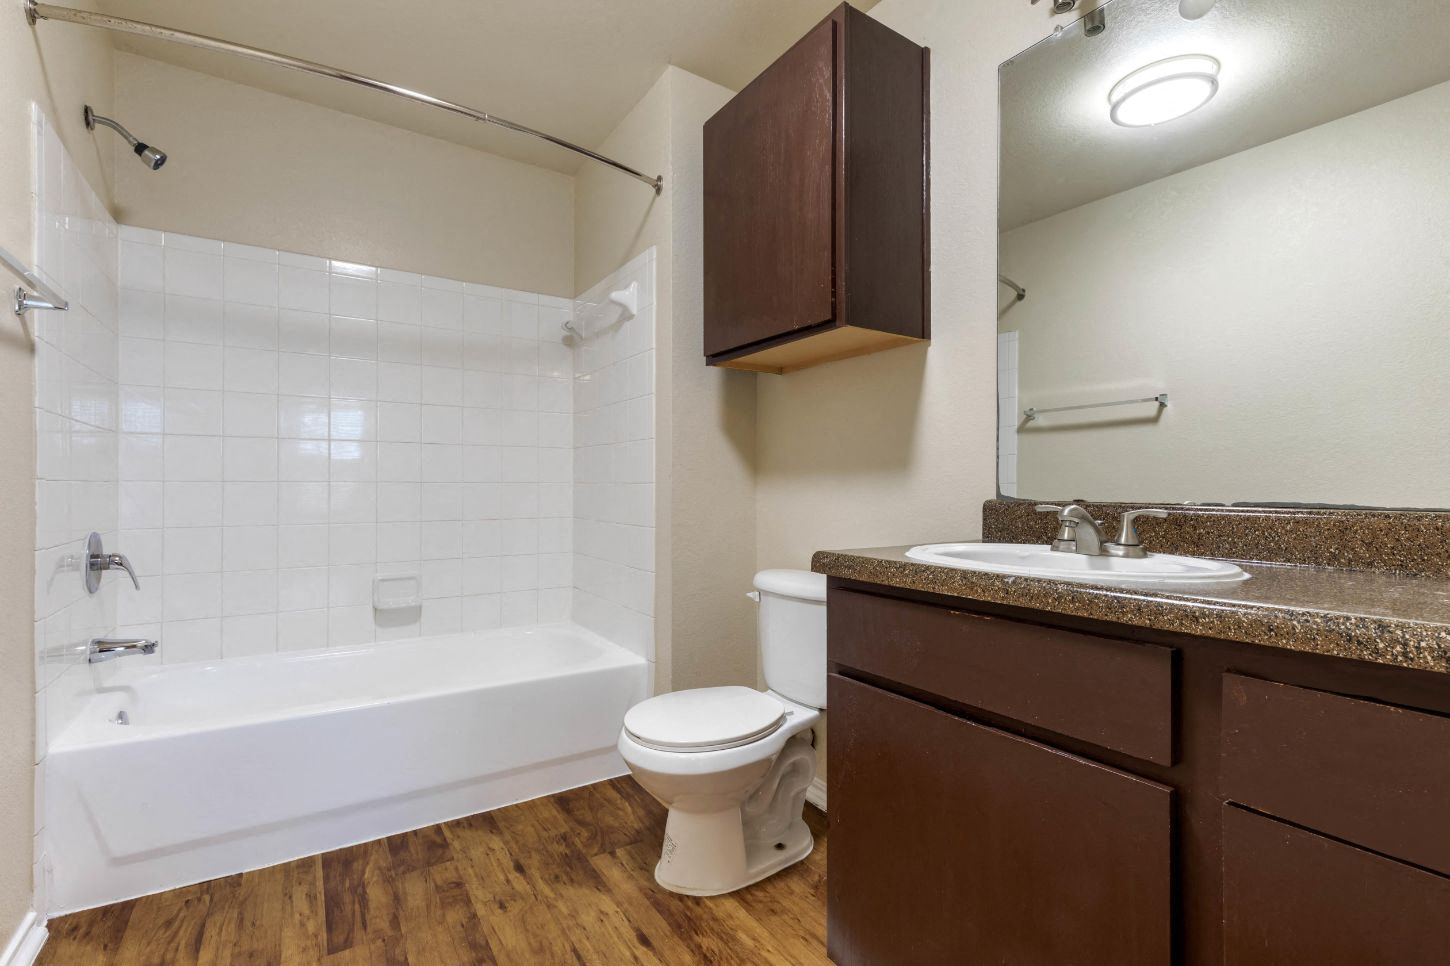 Bathroom with cabinet above storage